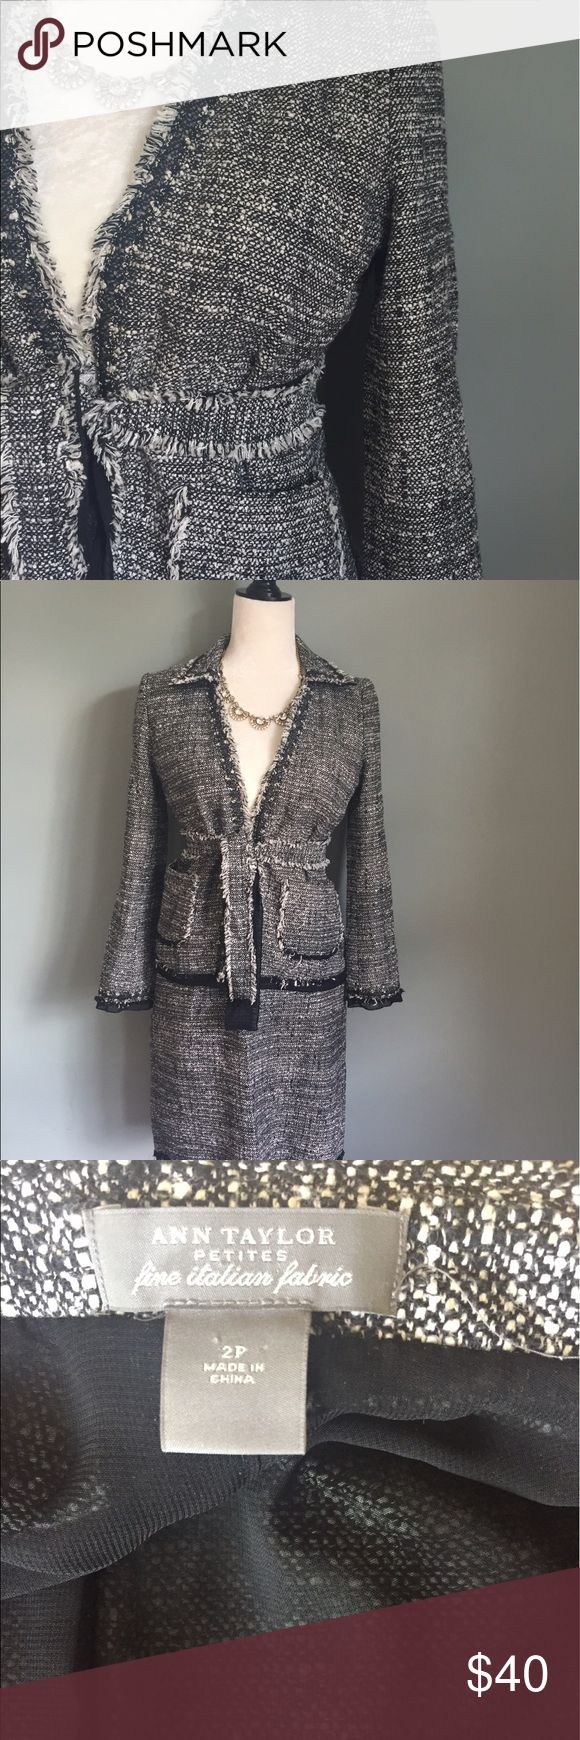 2 piece skirt suit with matching belt Black and white skirt suit with matching belt. Sheer black trim detail Ann Taylor Jackets & Coats Blazers